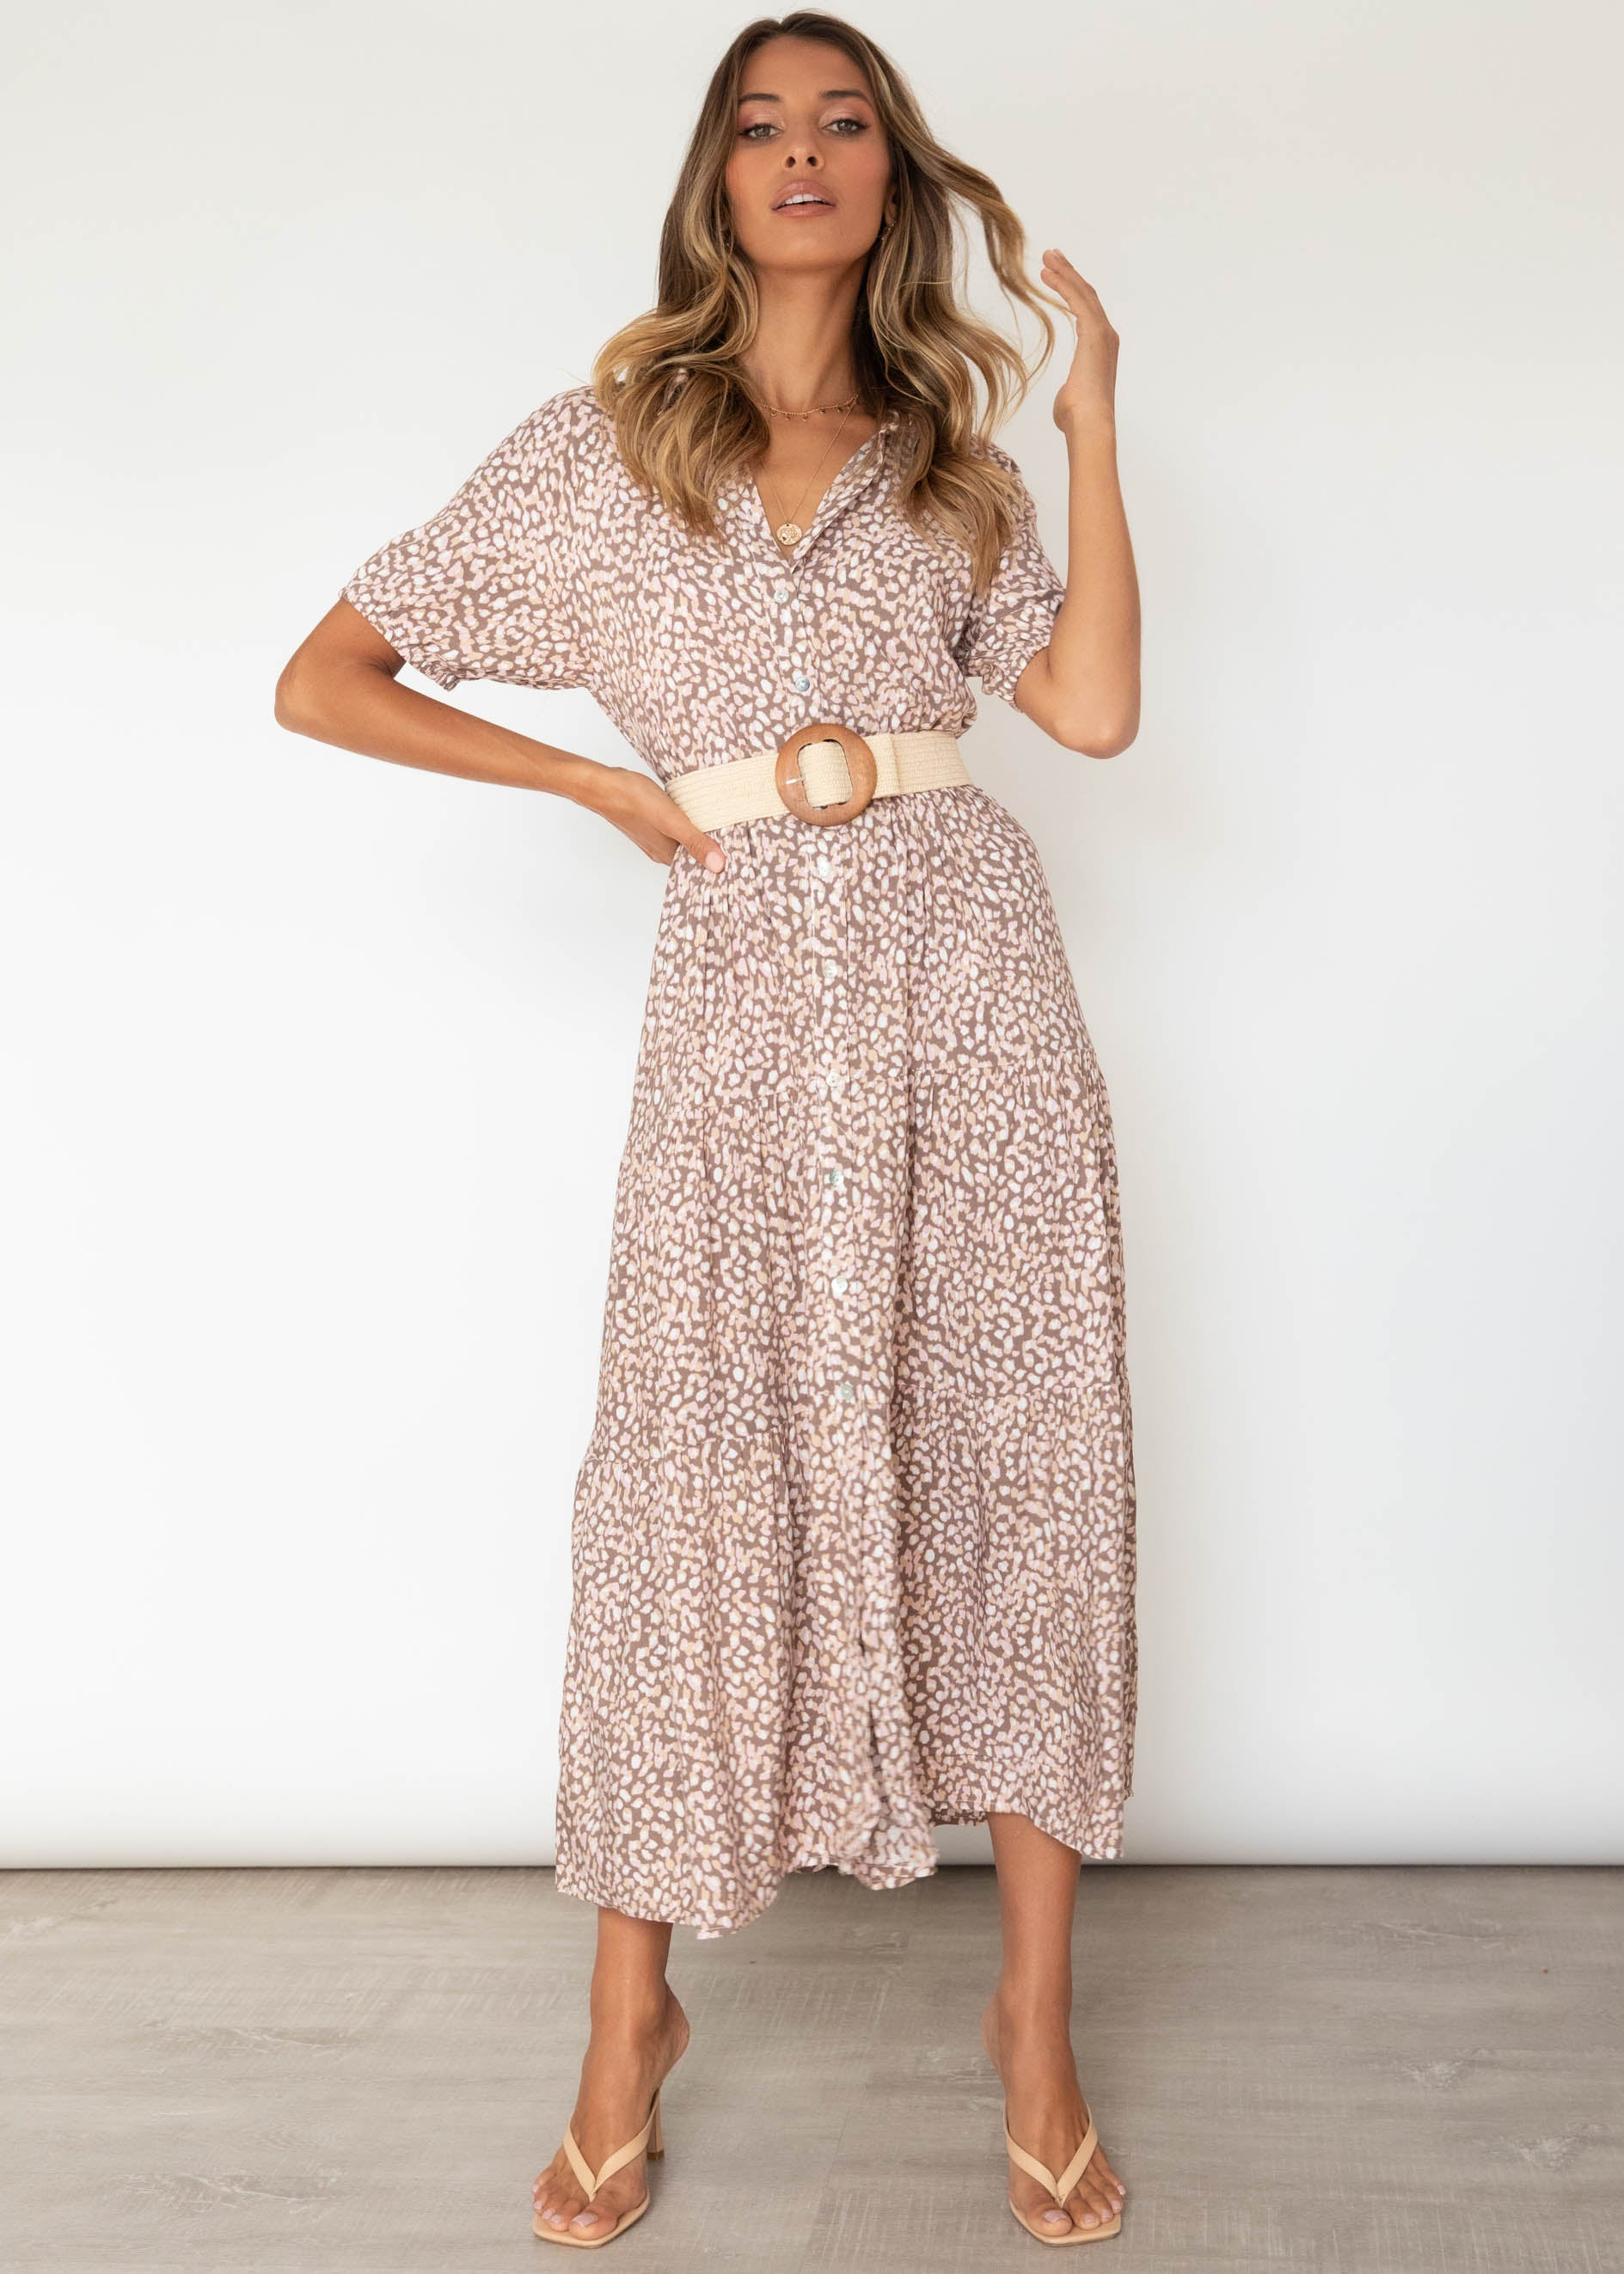 Tucana Midi Dress - Blush Leopard